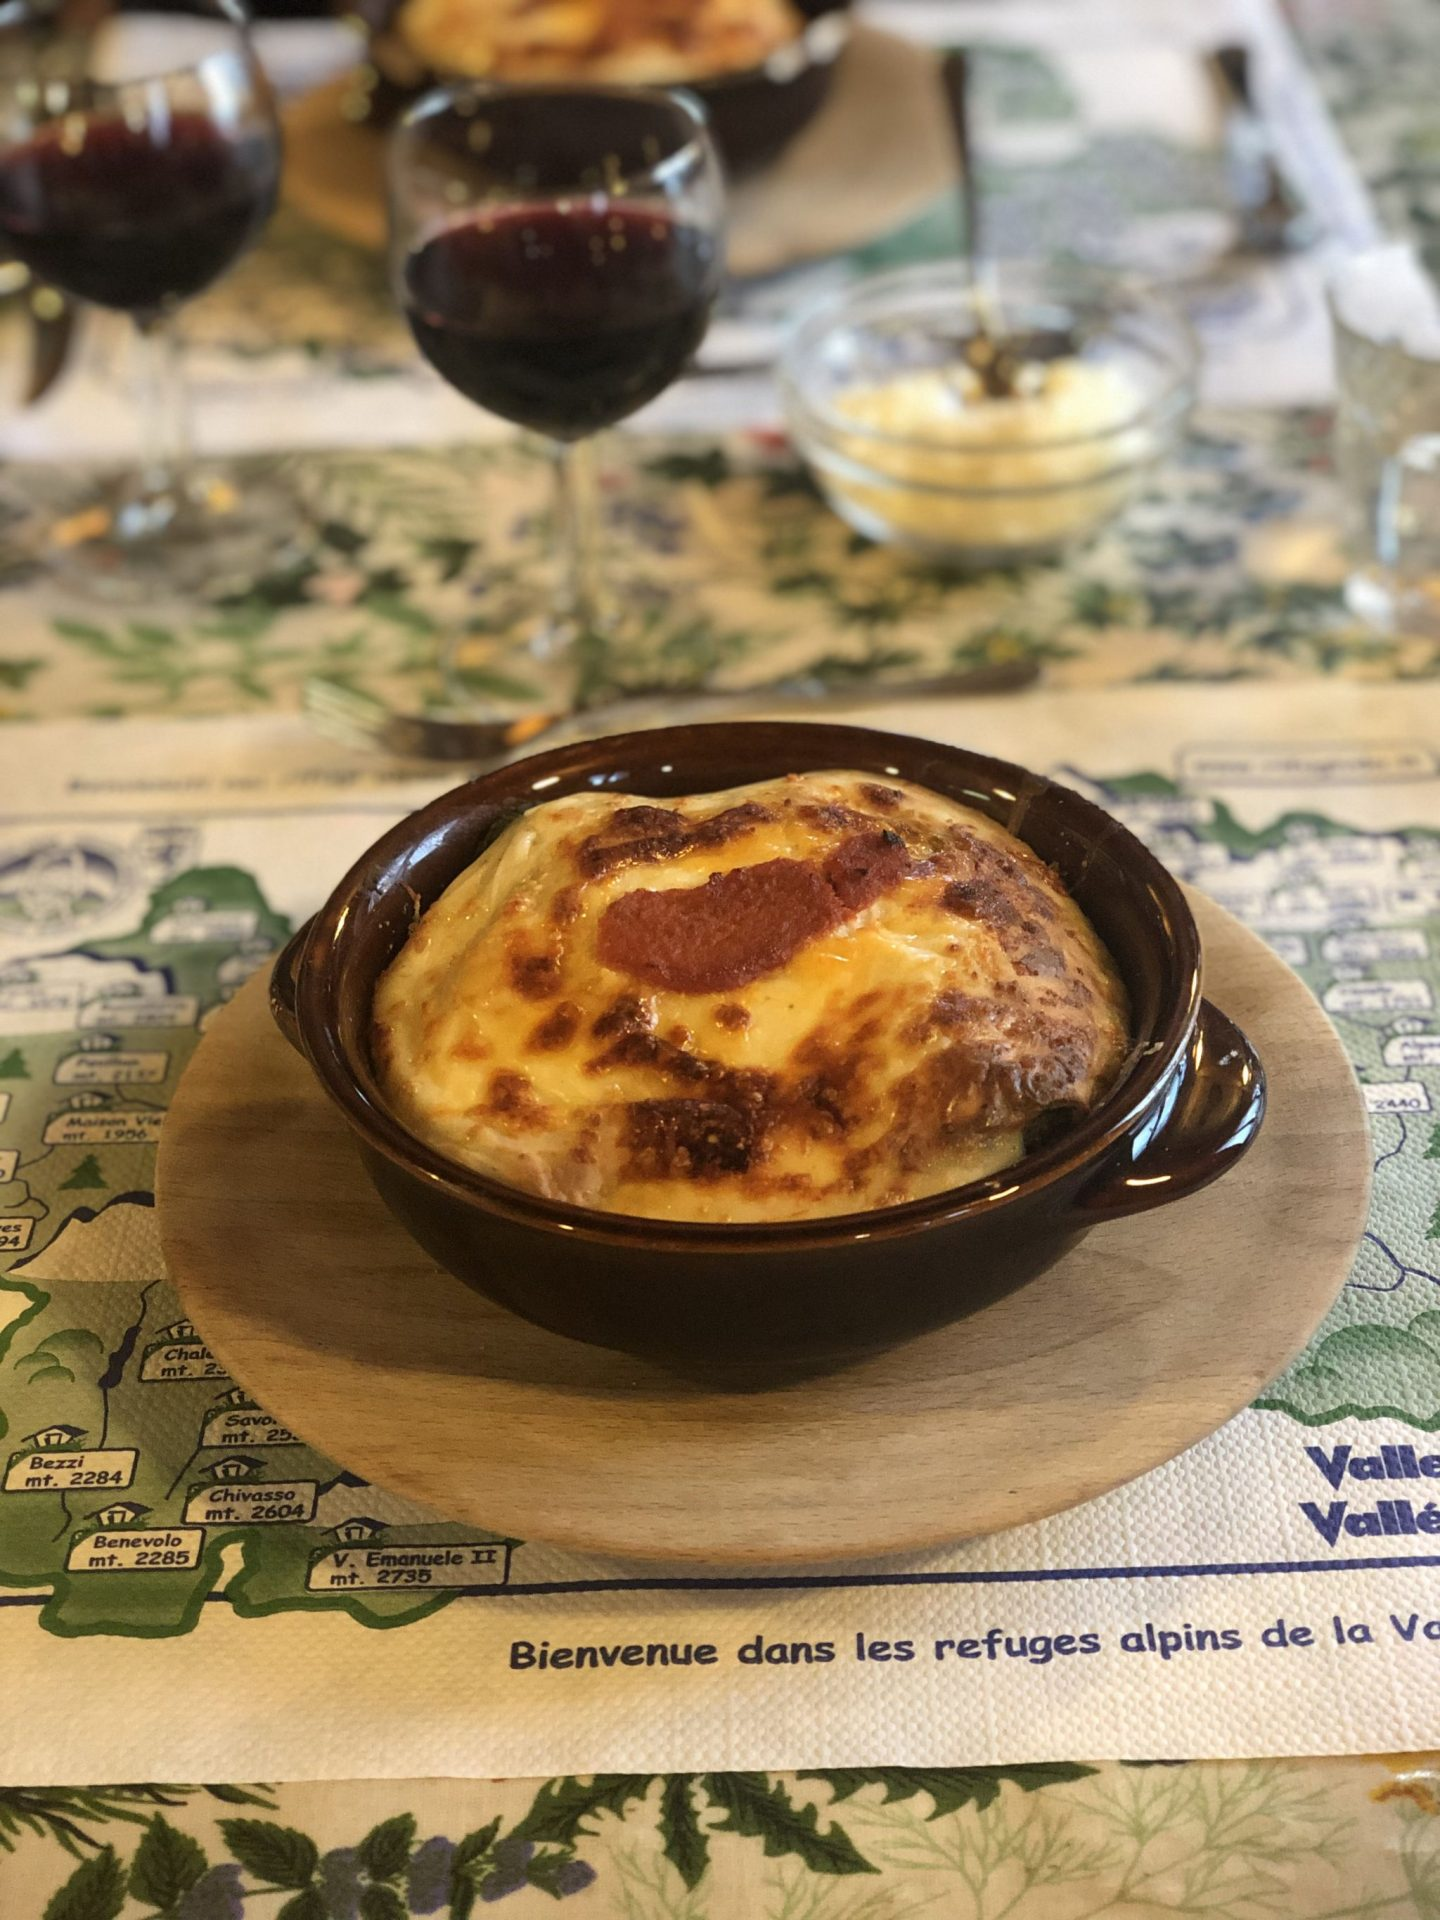 A bowl of cheesy cannelloni with a glass of red wine in the background, eaten in a mountain hut on the spaghetti tour